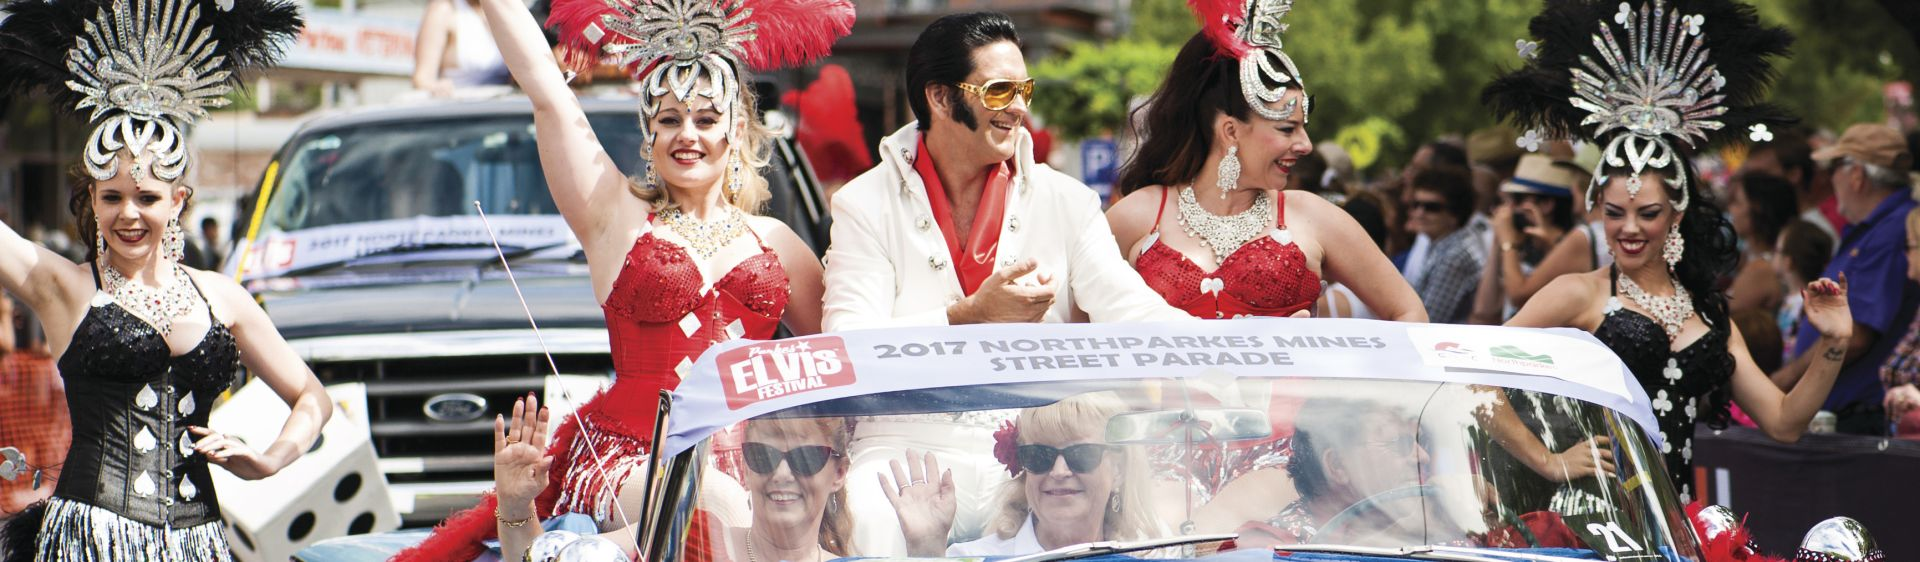 Elvis tribute parading down the street at the Parkes Elvis Festival 2017